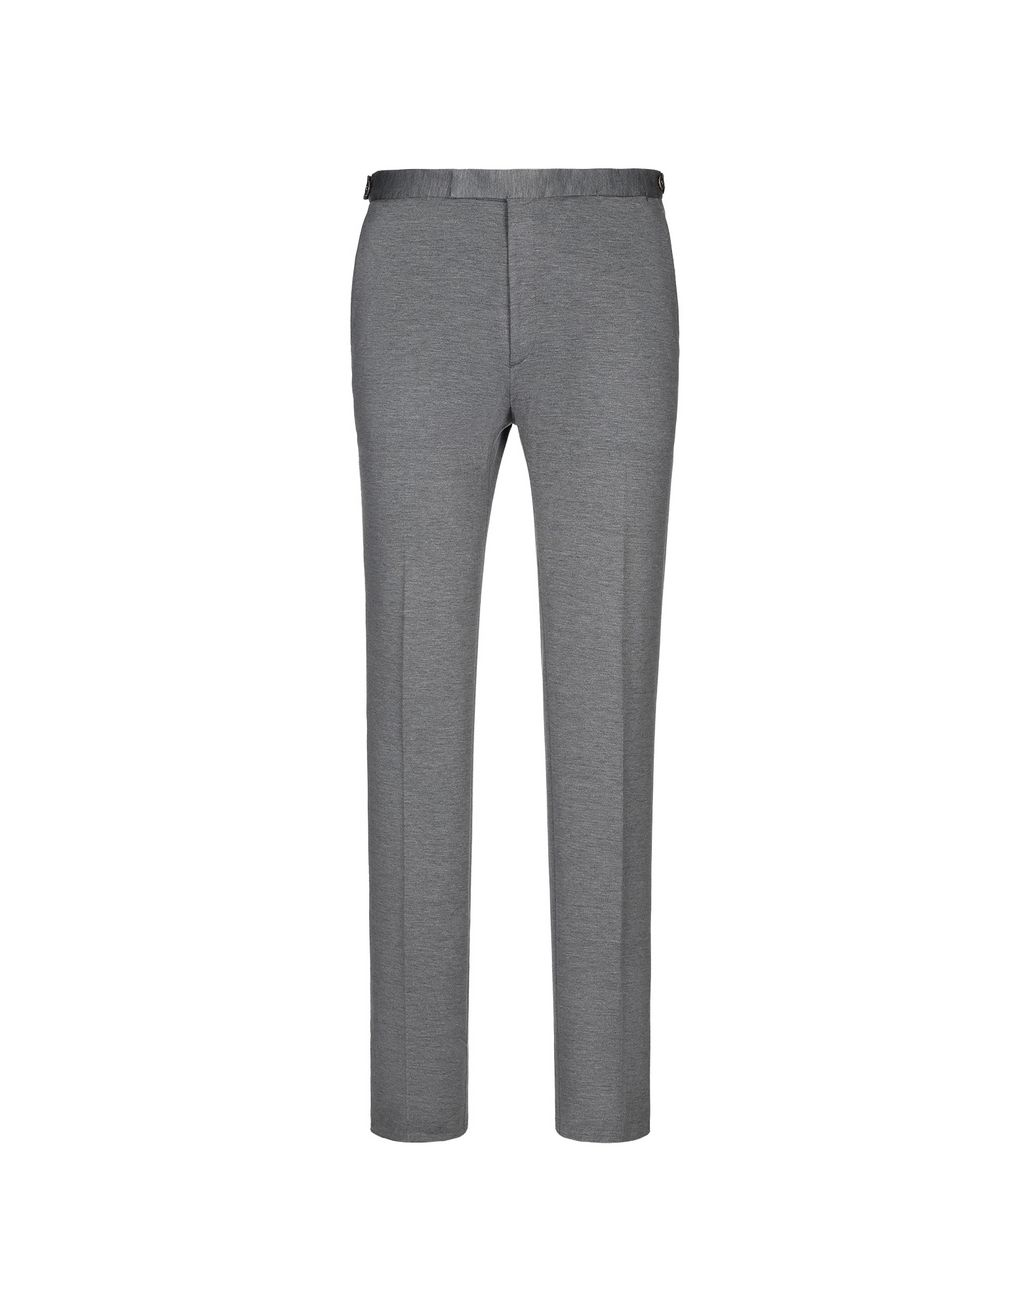 BRIONI Grey Jersey Trousers Trousers Man f